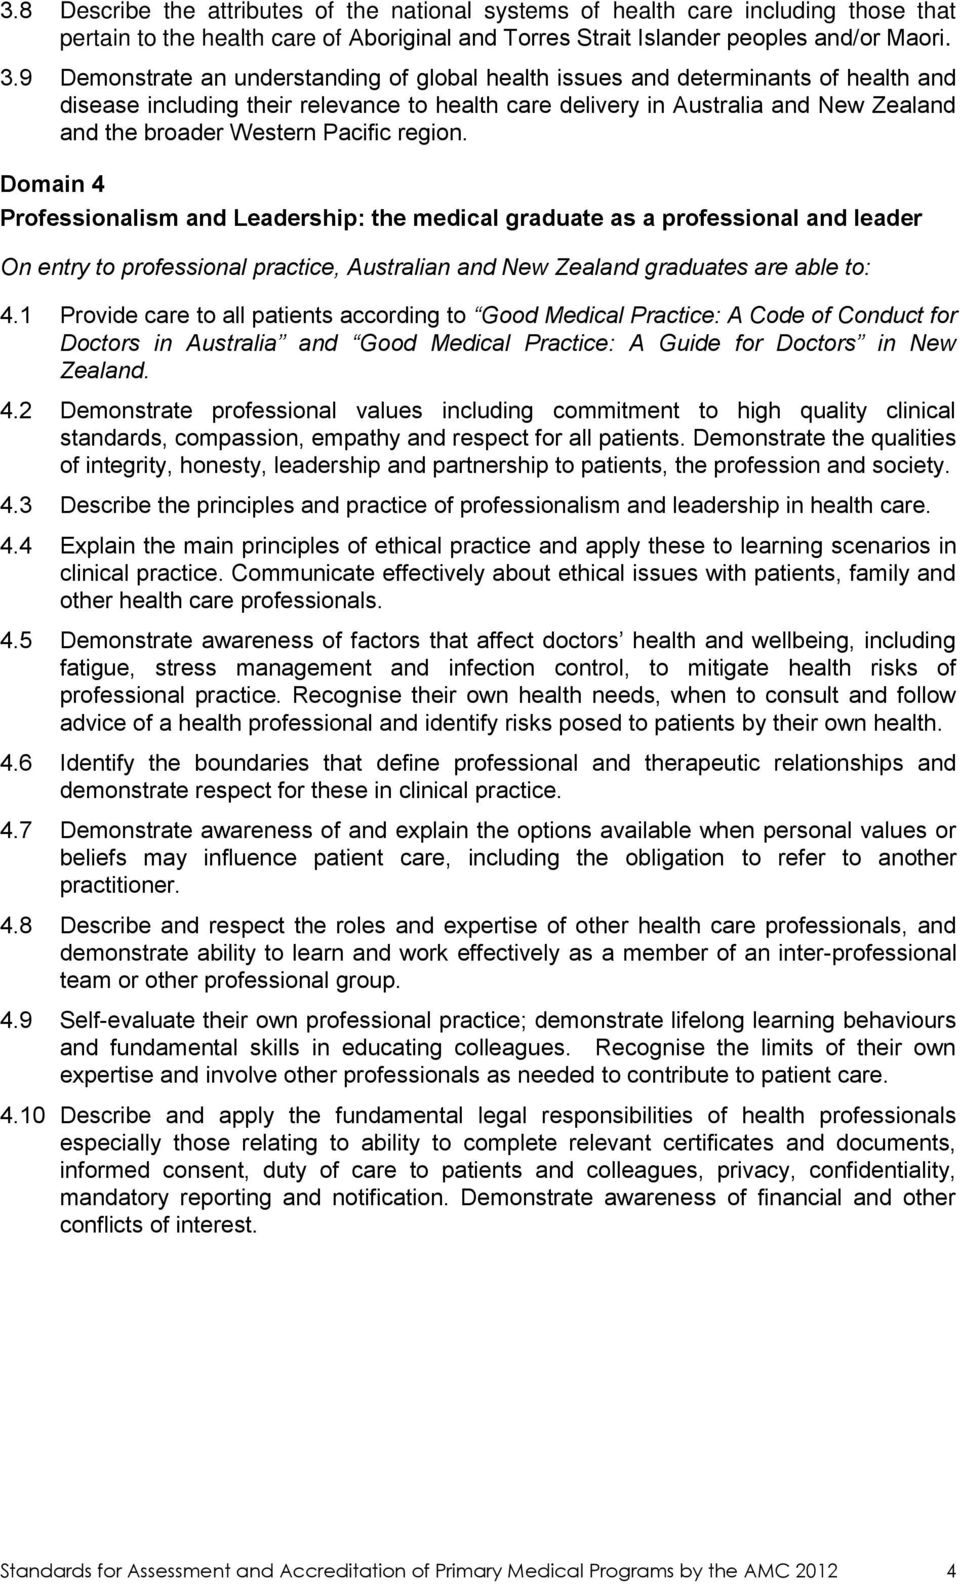 Pacific region. Domain 4 Professionalism and Leadership: the medical graduate as a professional and leader On entry to professional practice, Australian and New Zealand graduates are able to: 4.